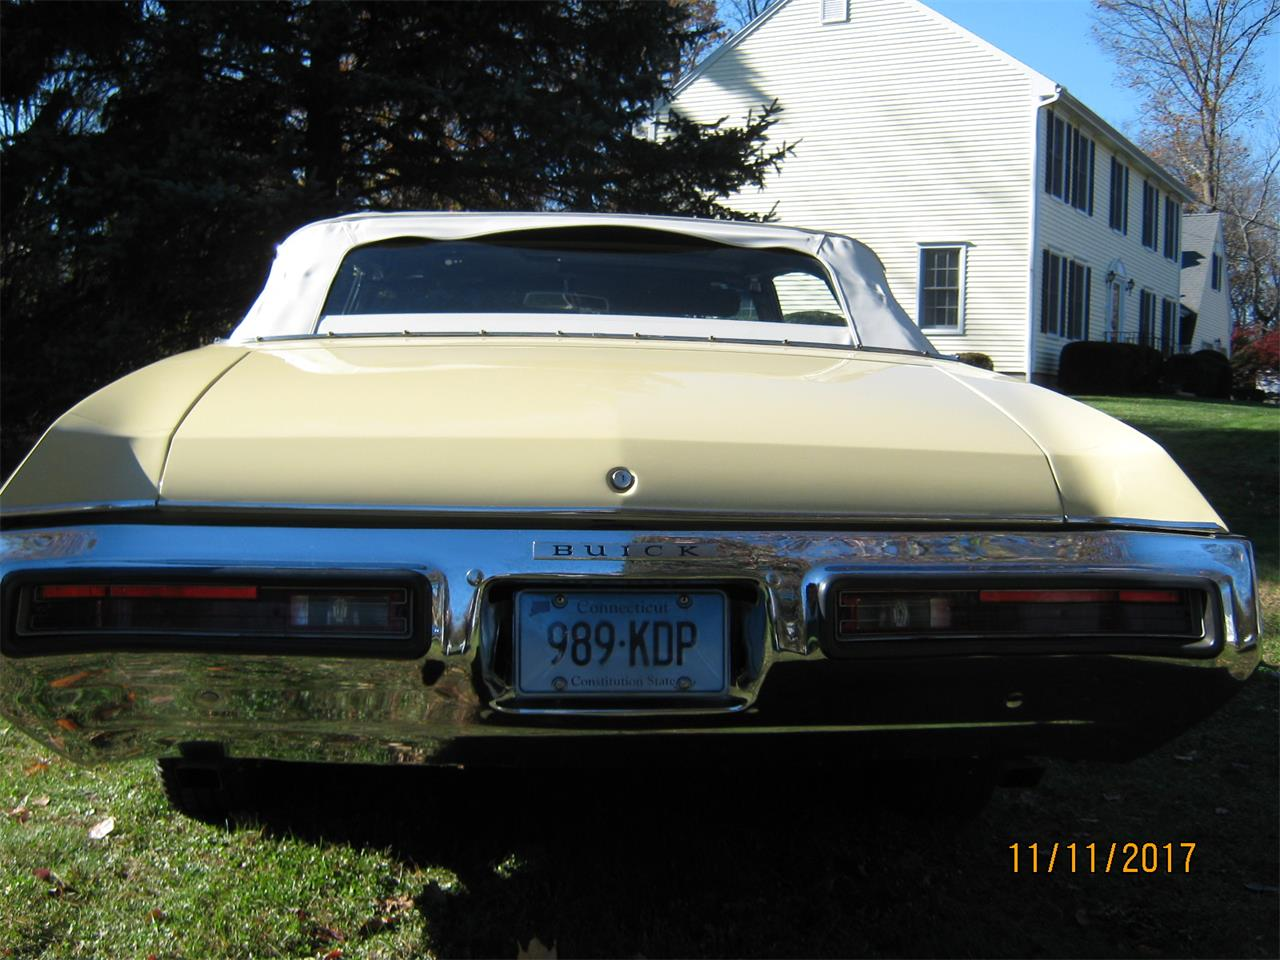 Large Picture of '72 Buick Skylark located in Connecticut - $19,000.00 - N1WN